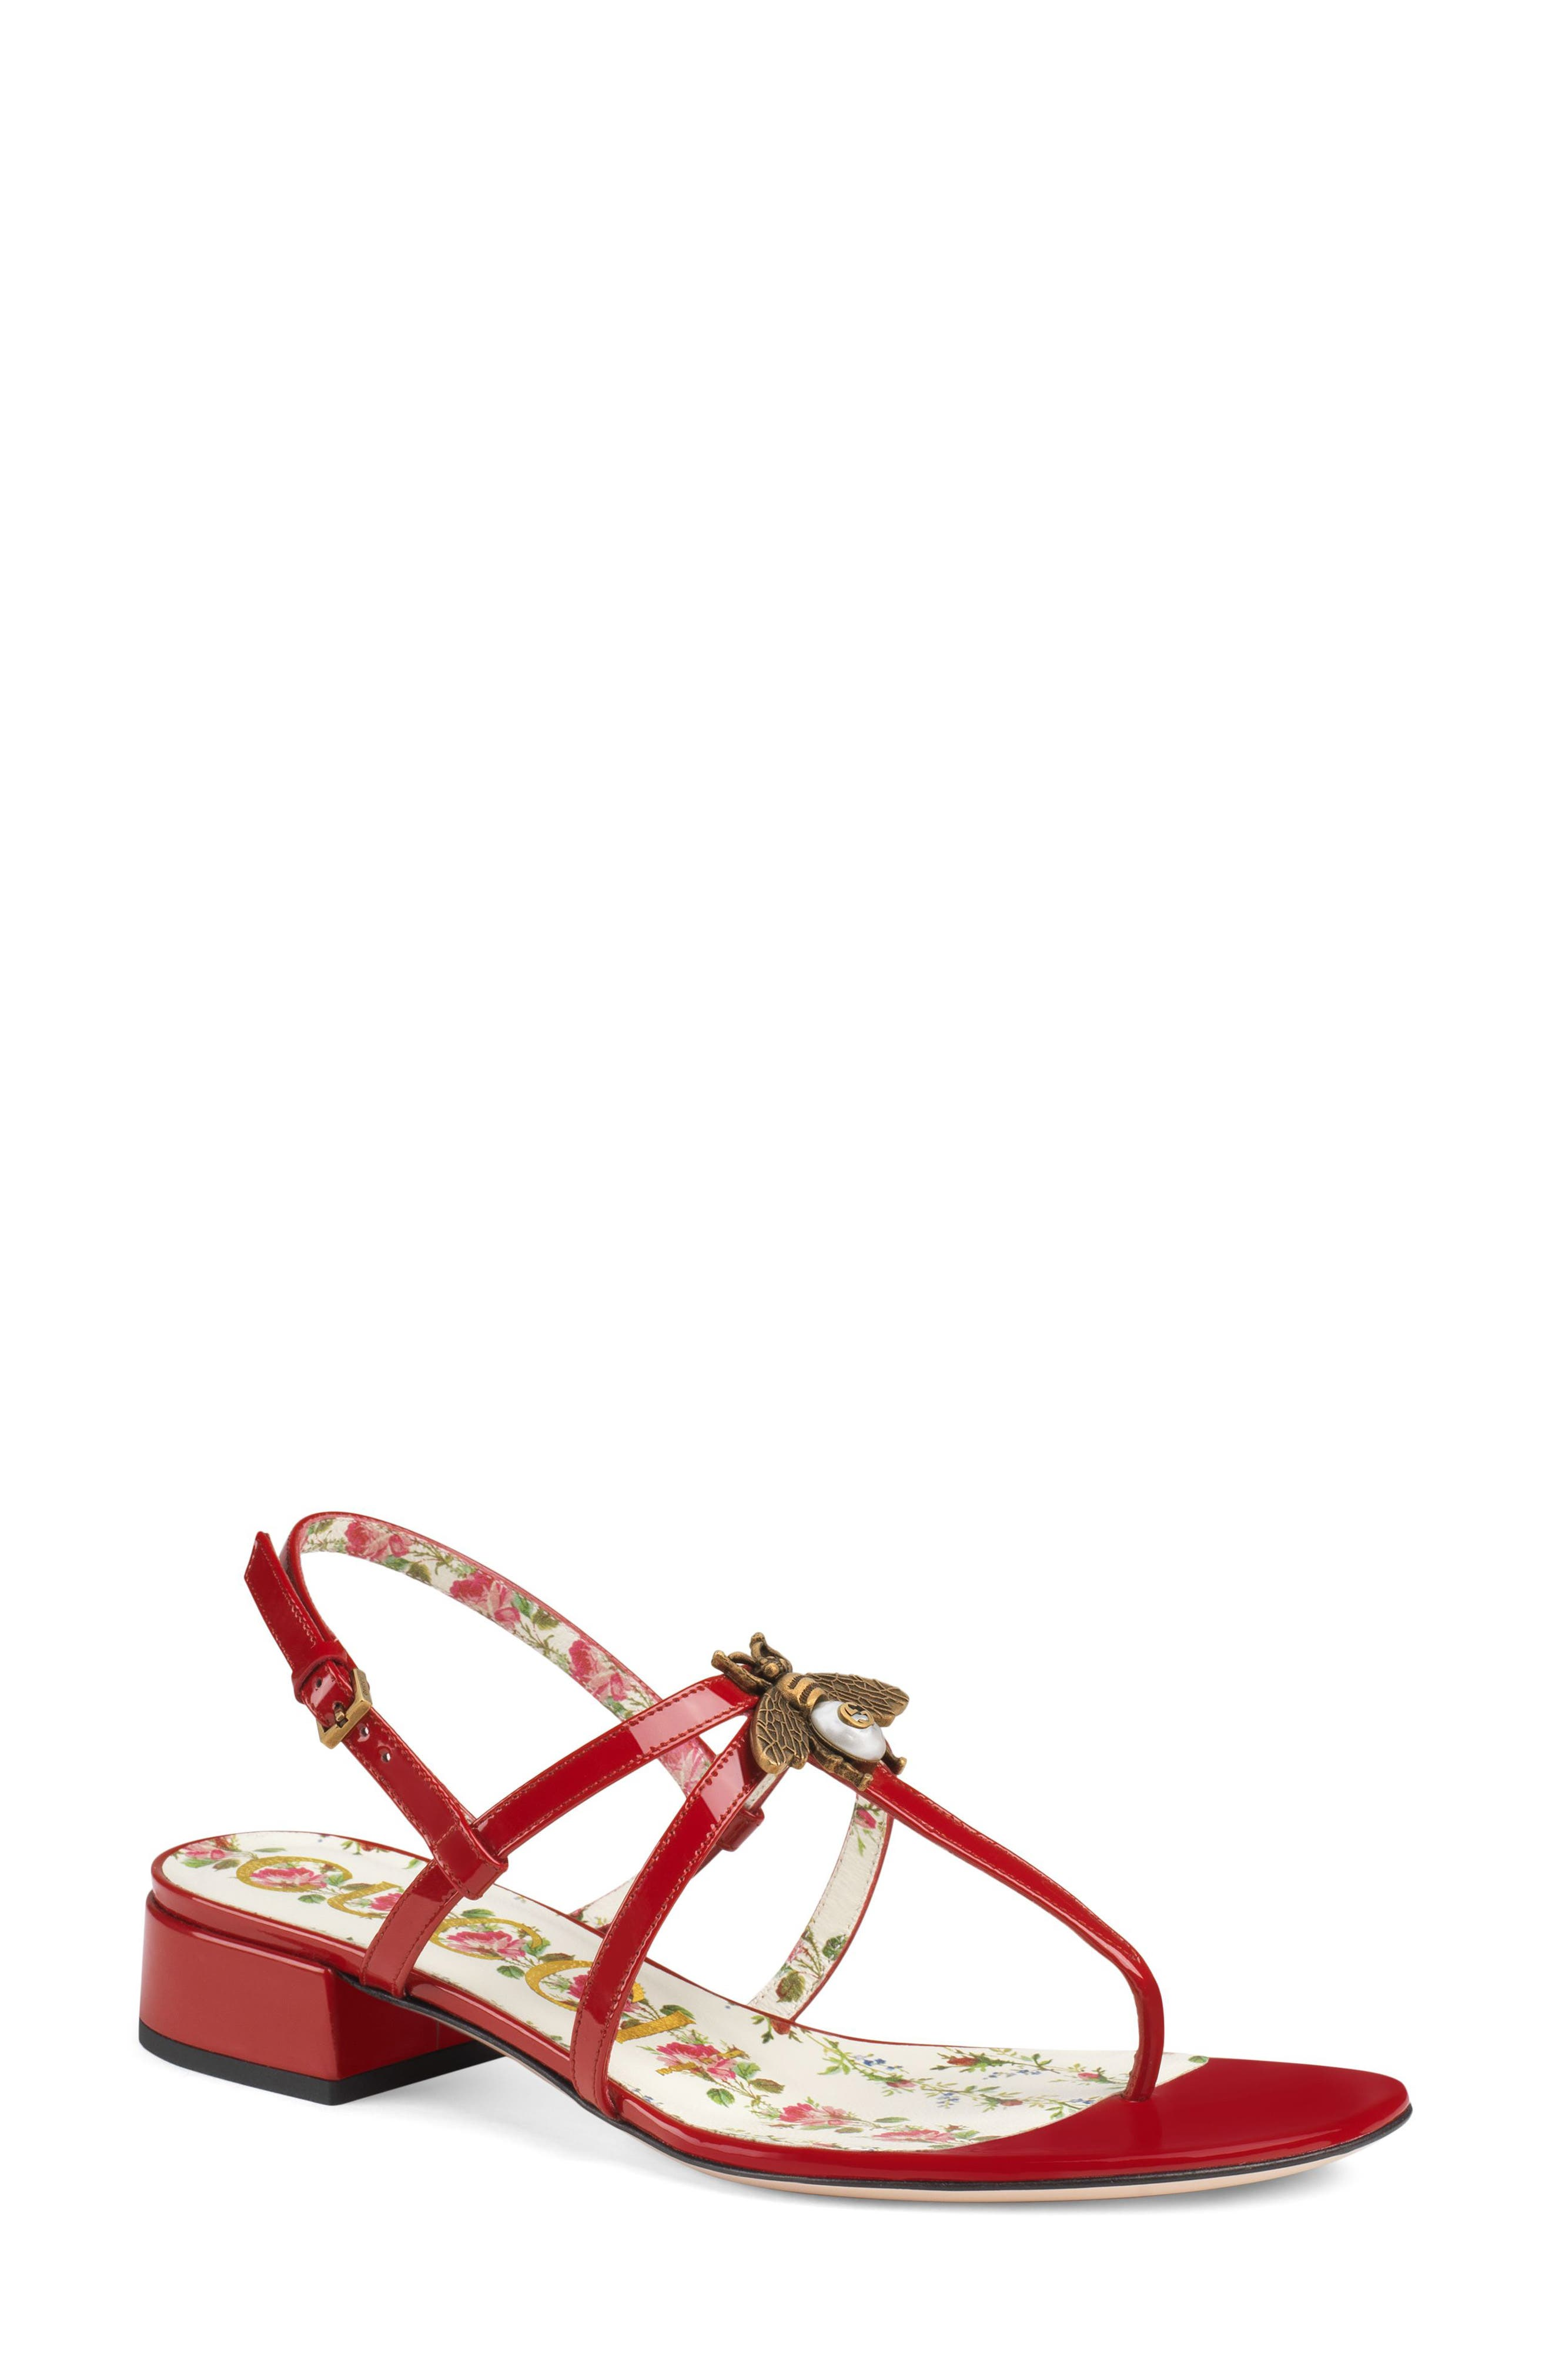 GUCCI Bee Thong Sandal, Main, color, HIBISCUS RED